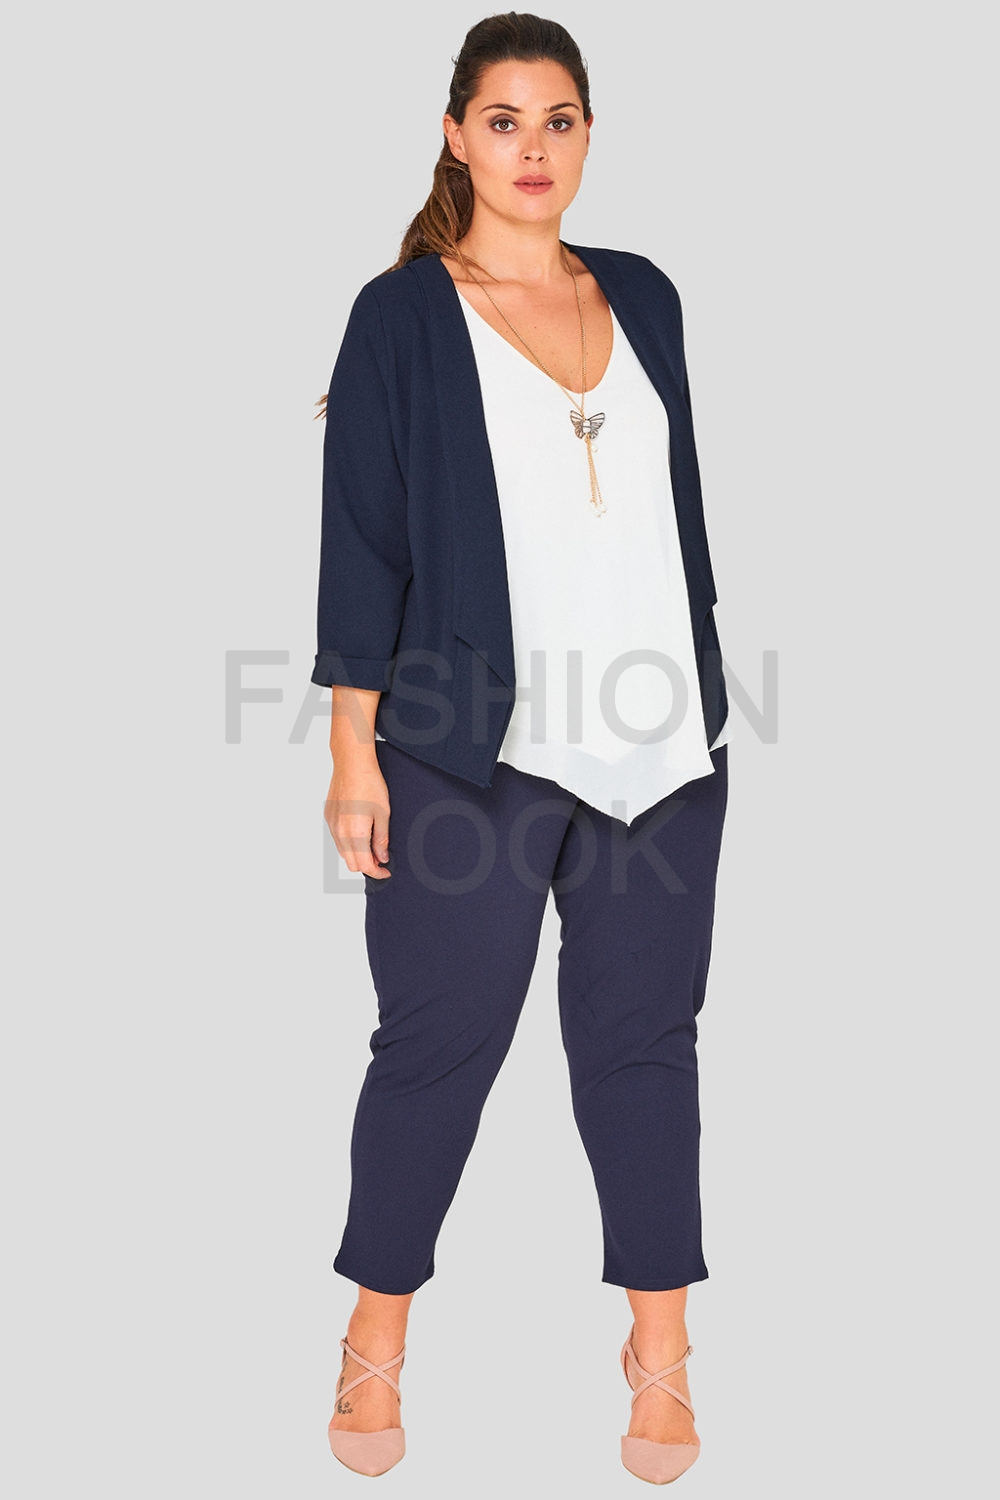 Drape Front Plus Size Wholesale Blazer